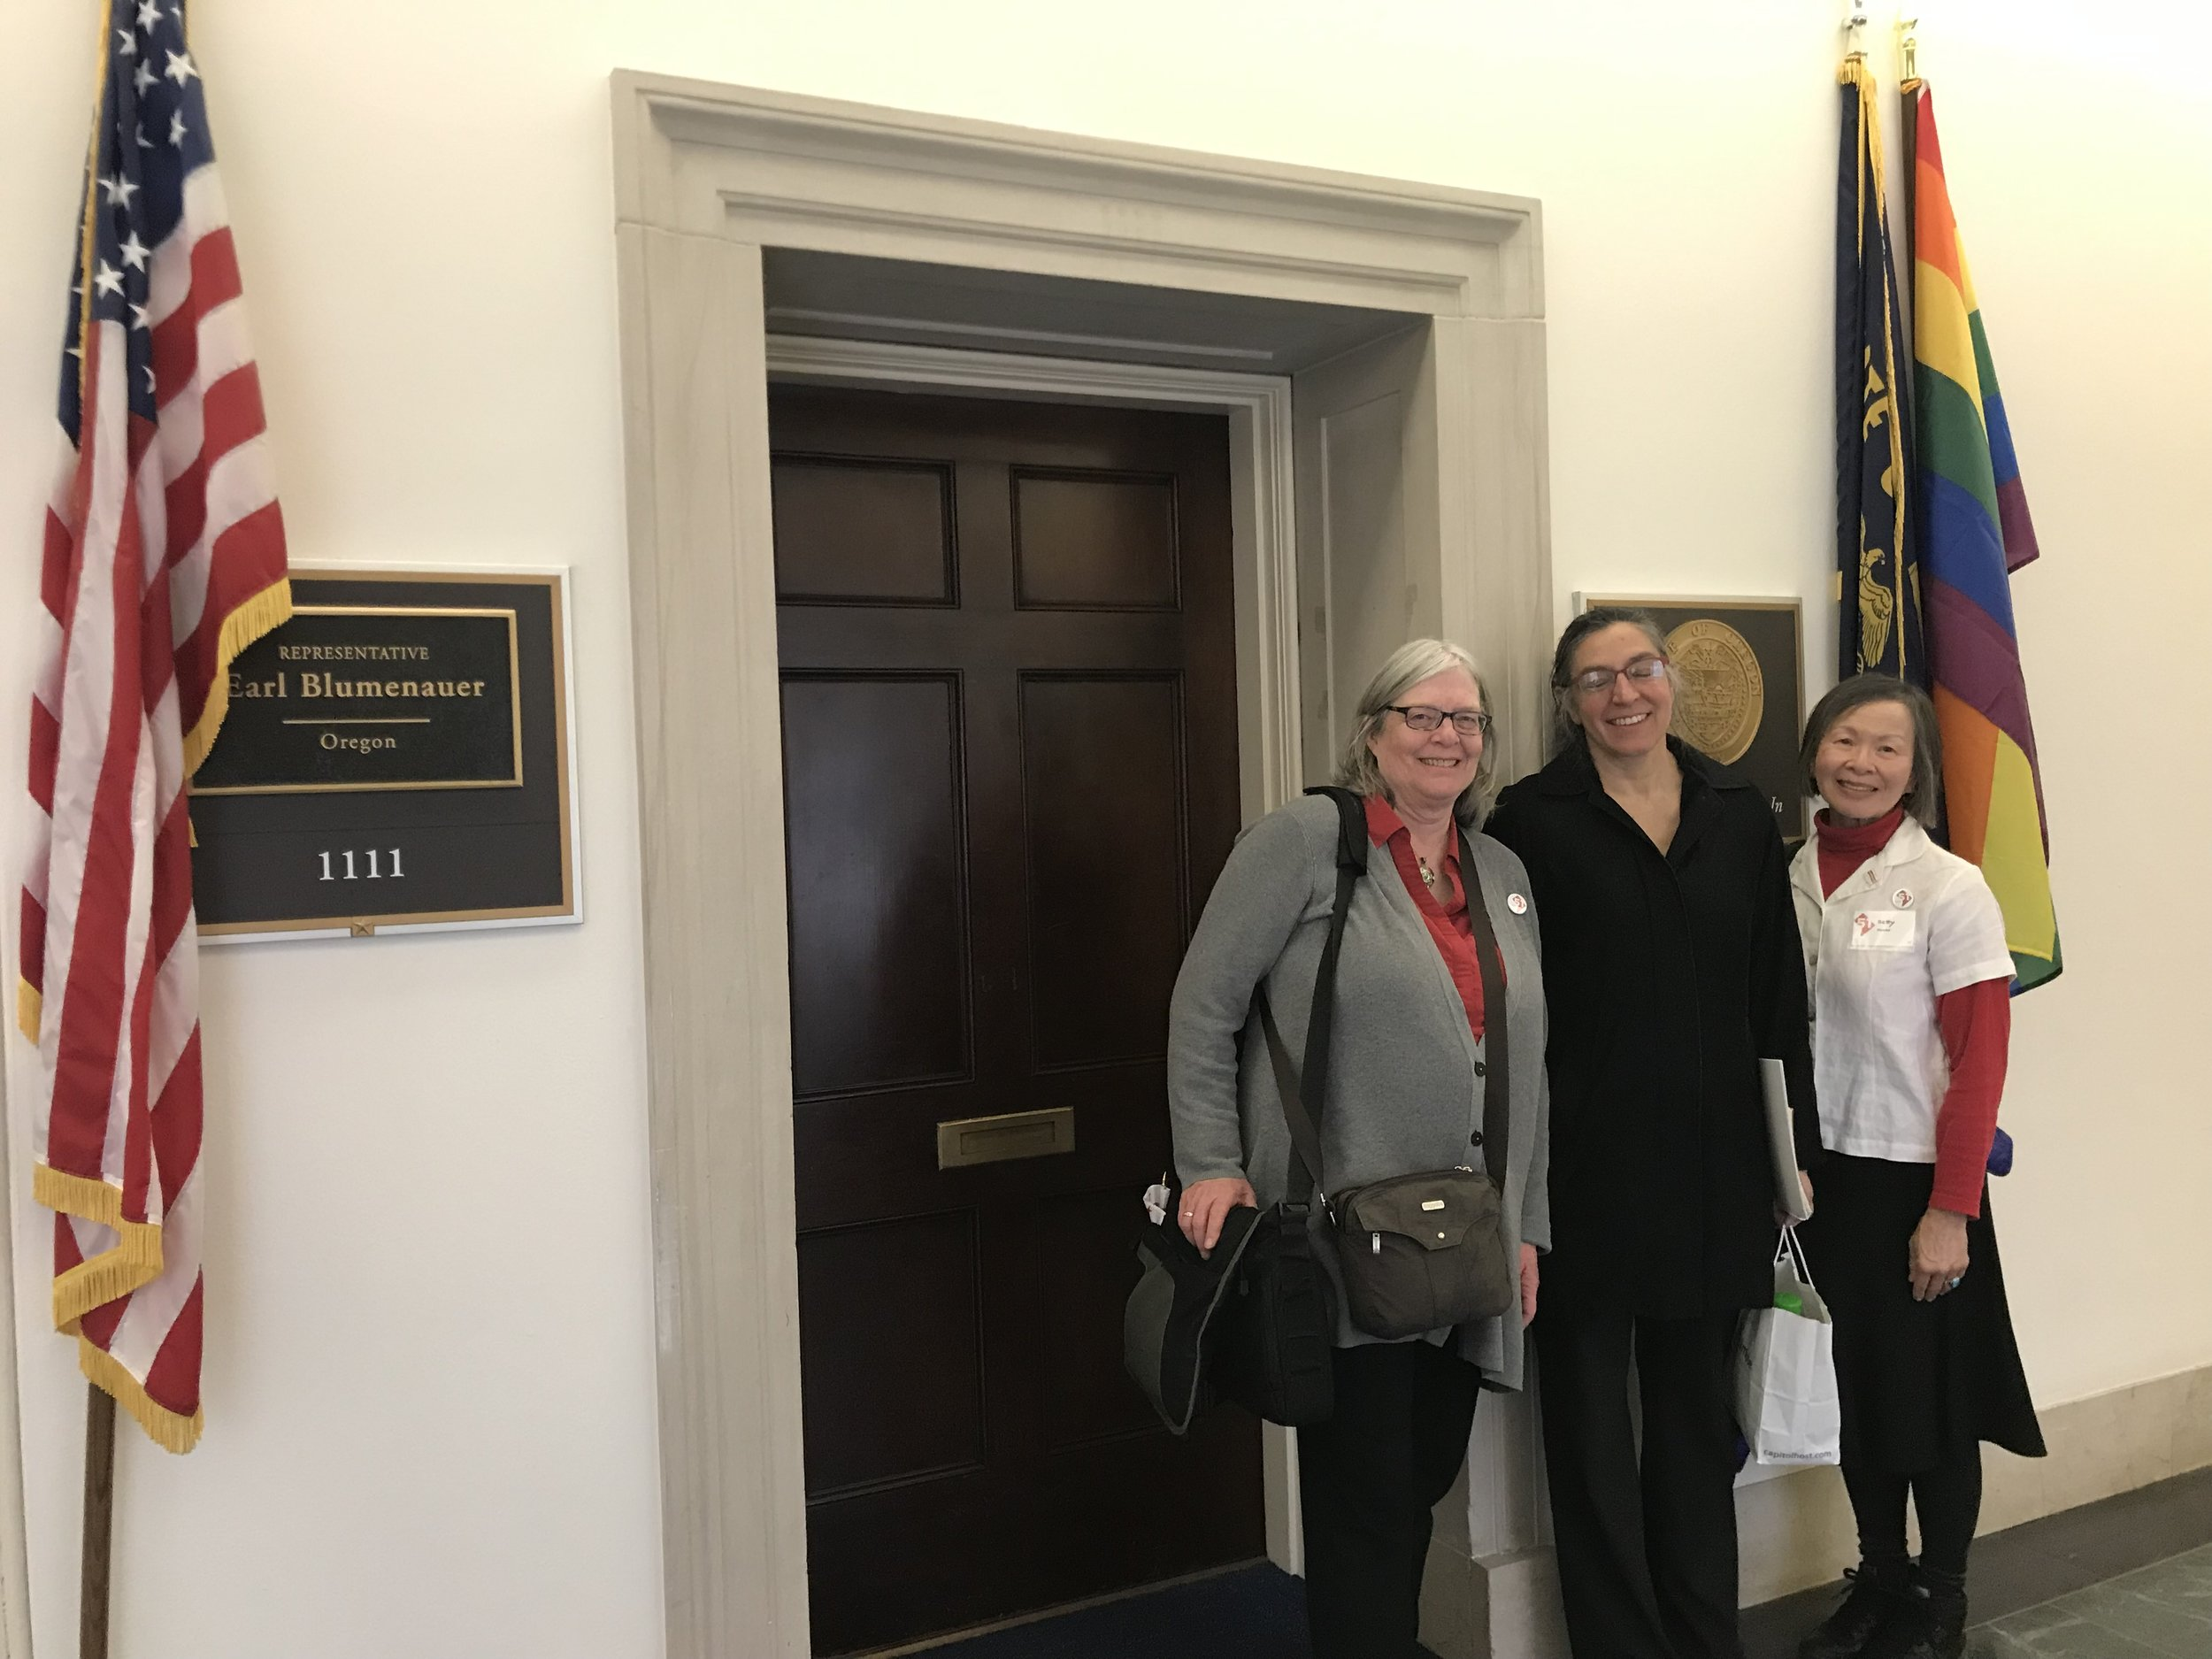 Lobbying for DC Statehood and H.R. 51. (February 2019)